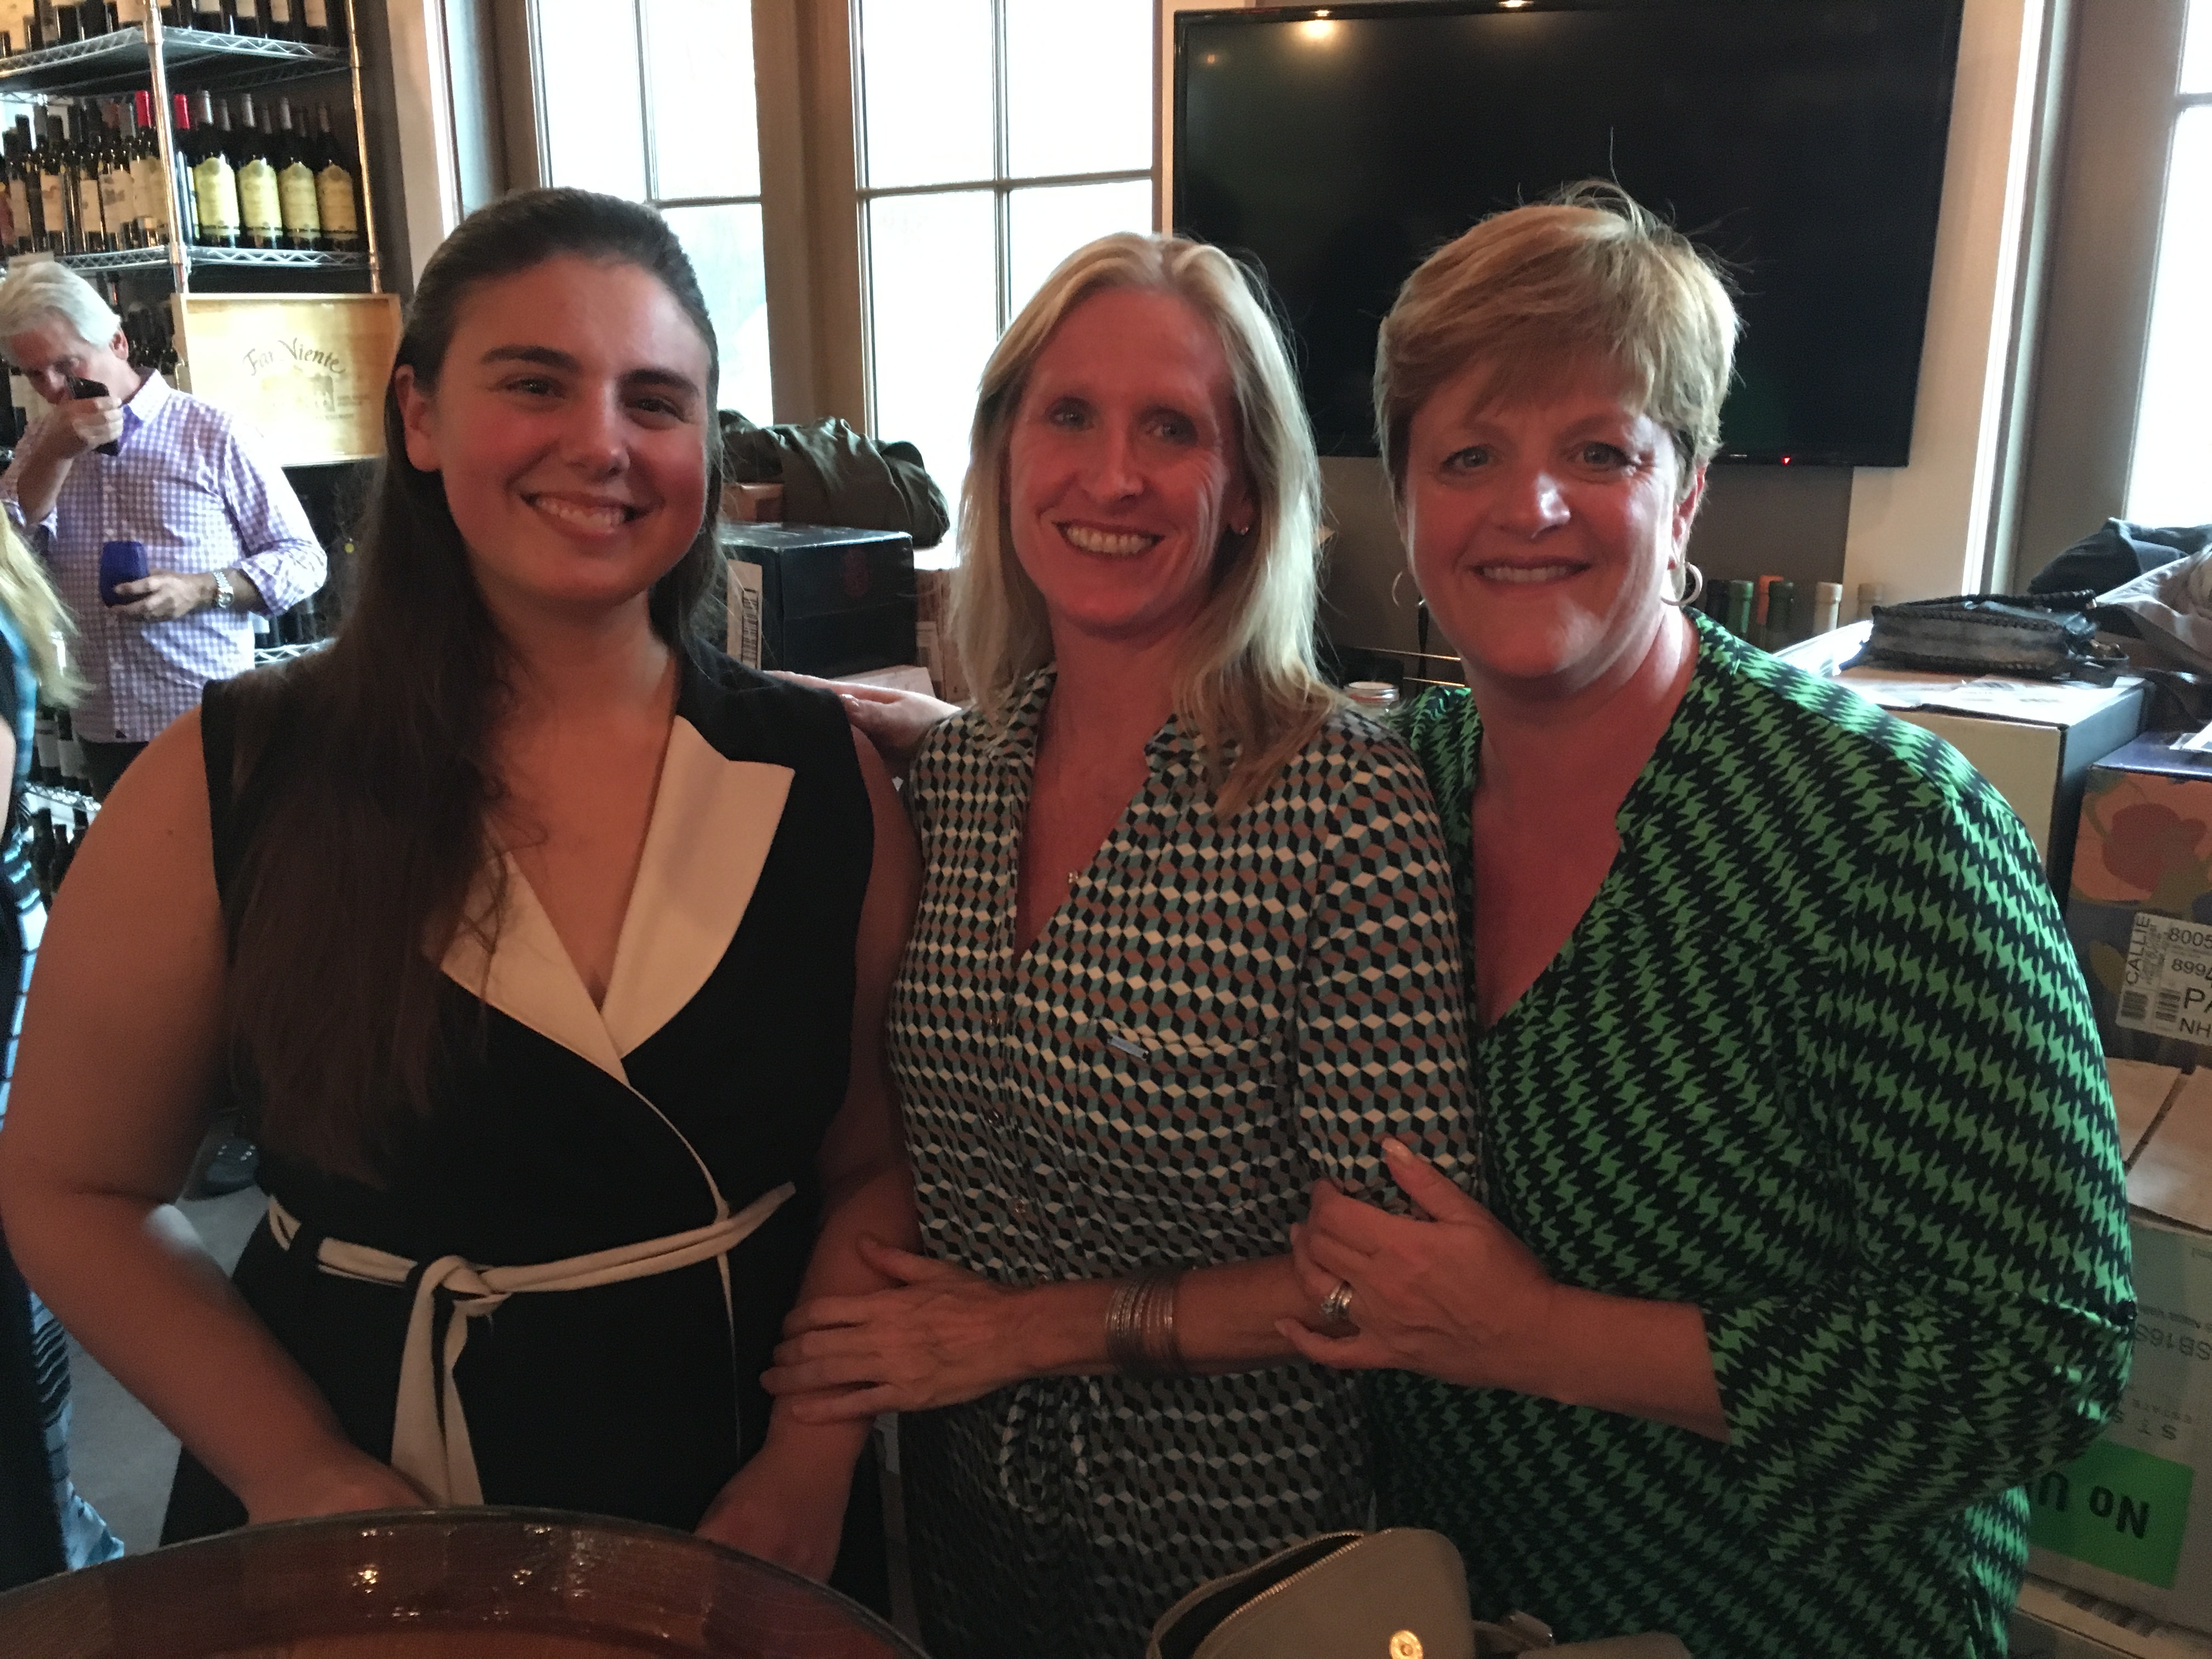 Kelly Denton, a local dance instructor, Crystal Klimavicz and Terry Haas, who serves on both the DIPAC Board of Directors and Advisory Committee.